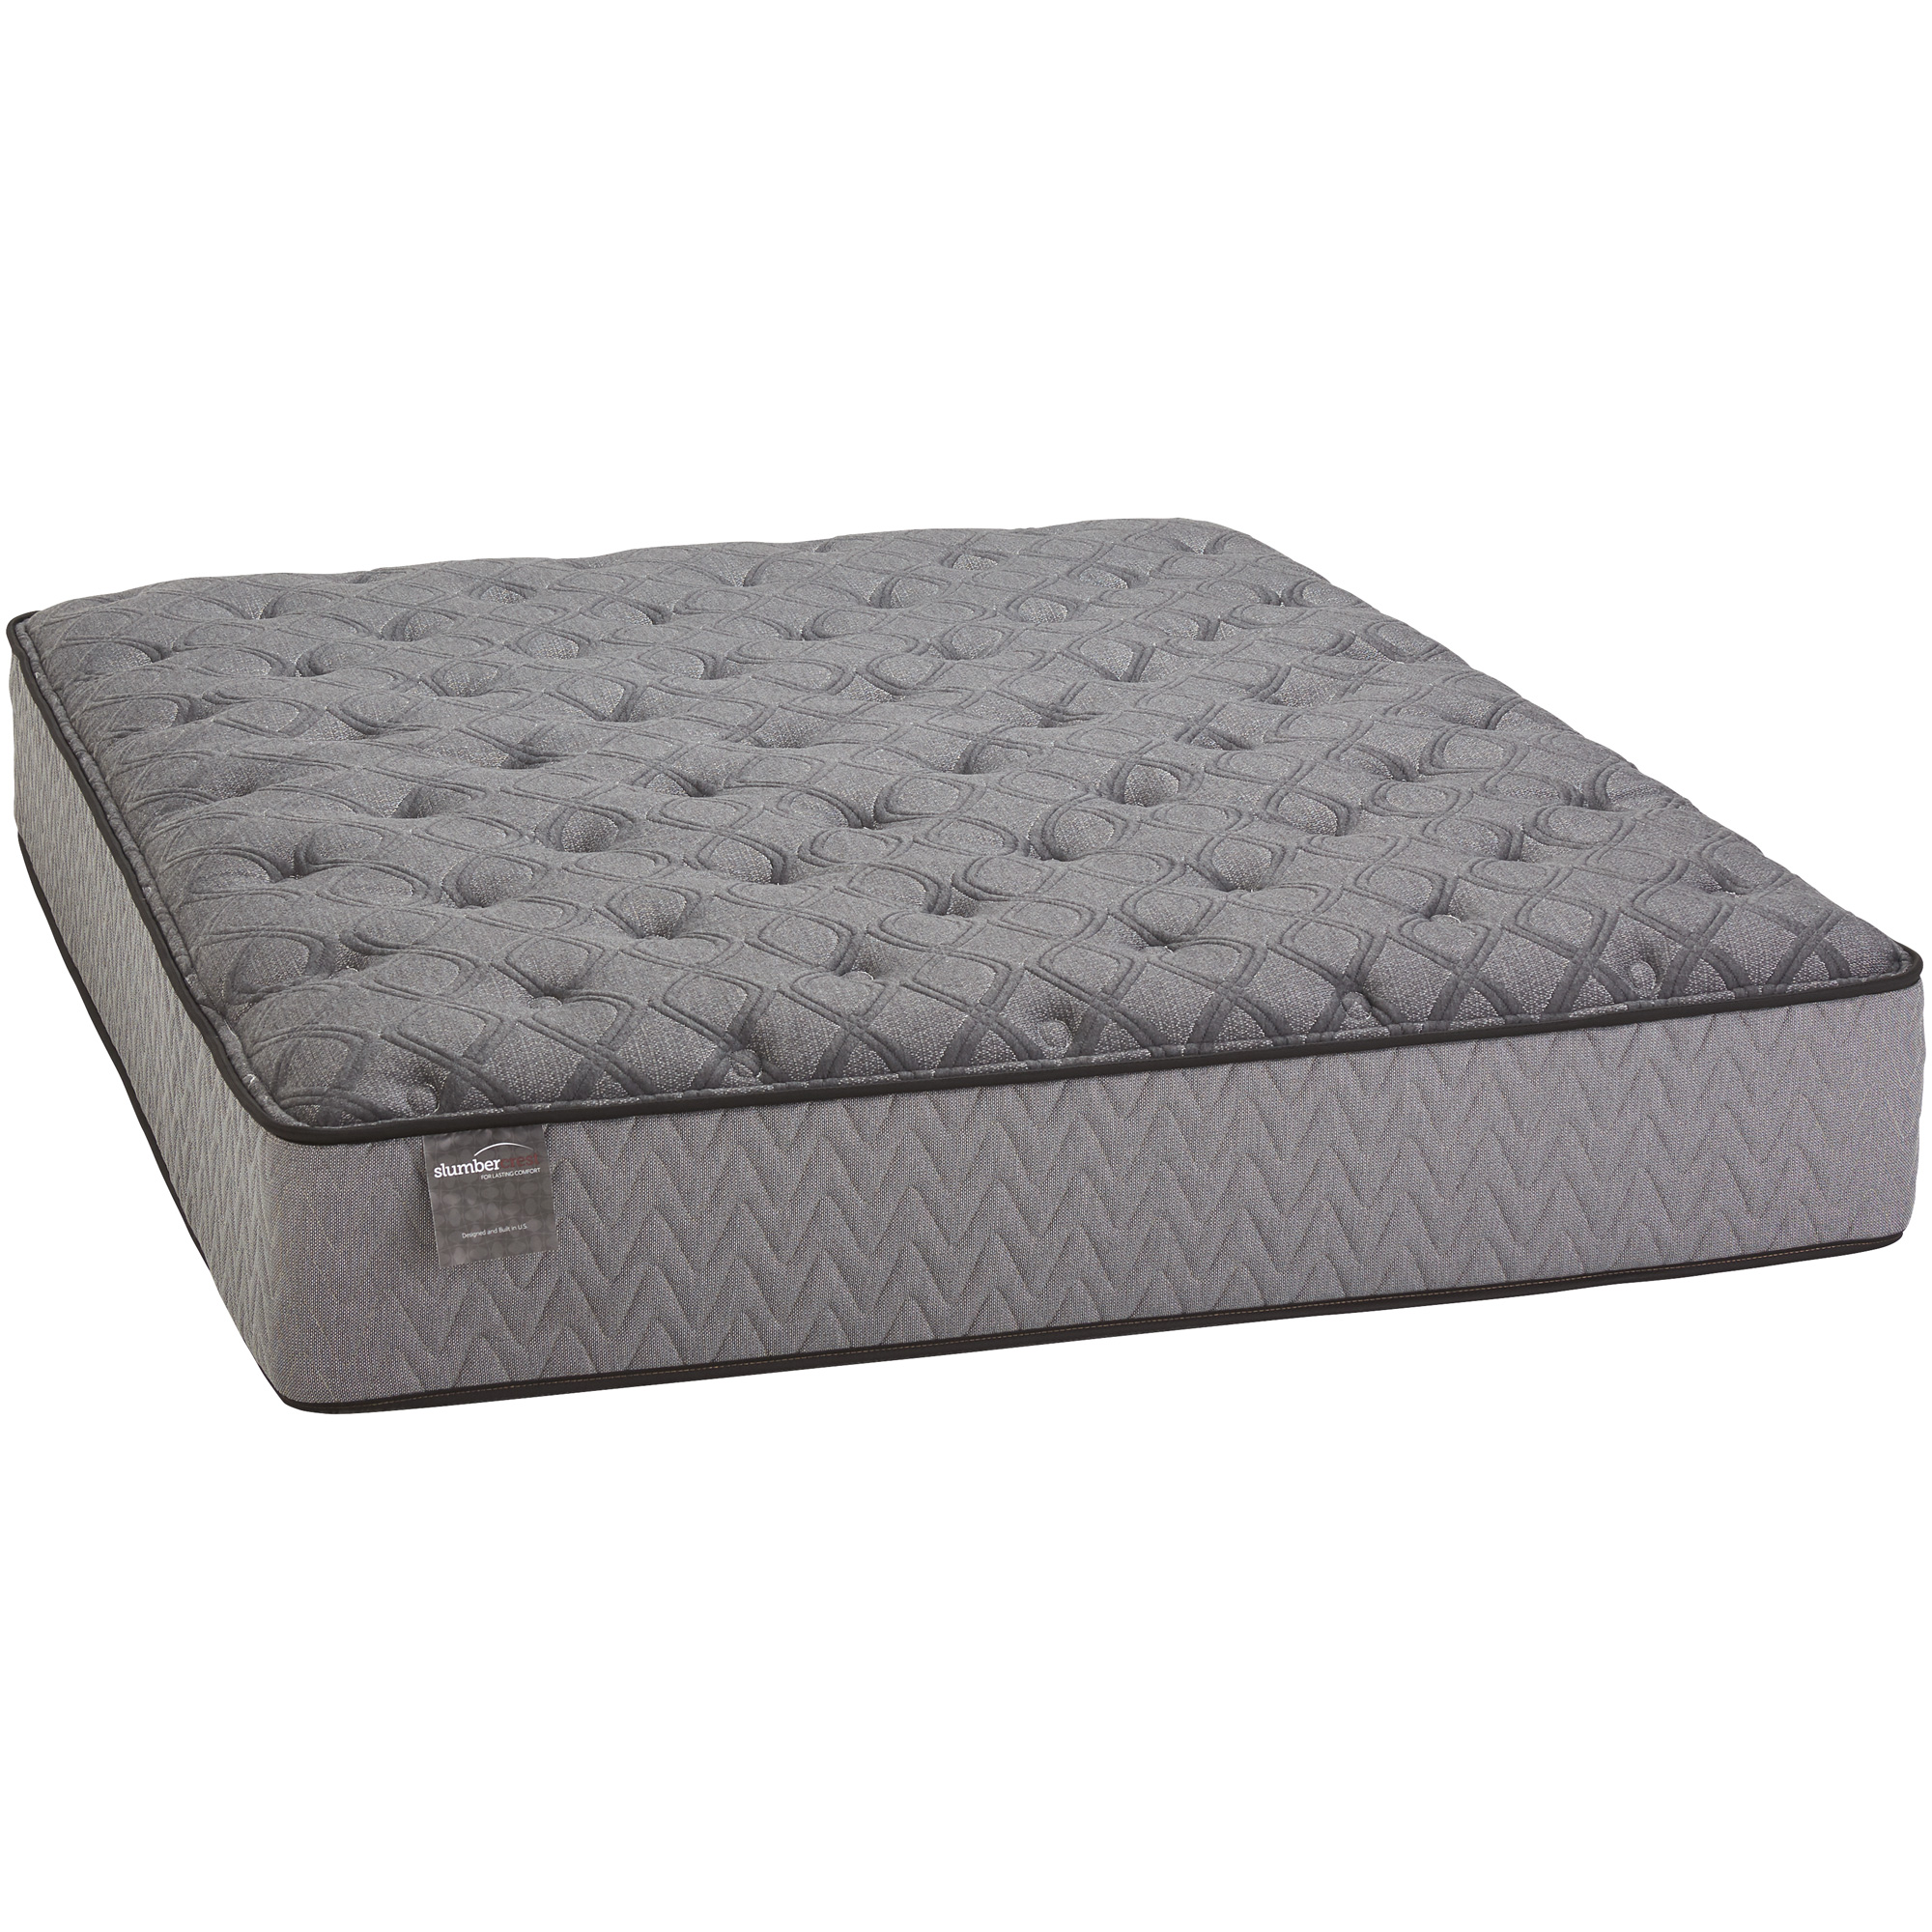 Slumbercrest Plush King Mattress